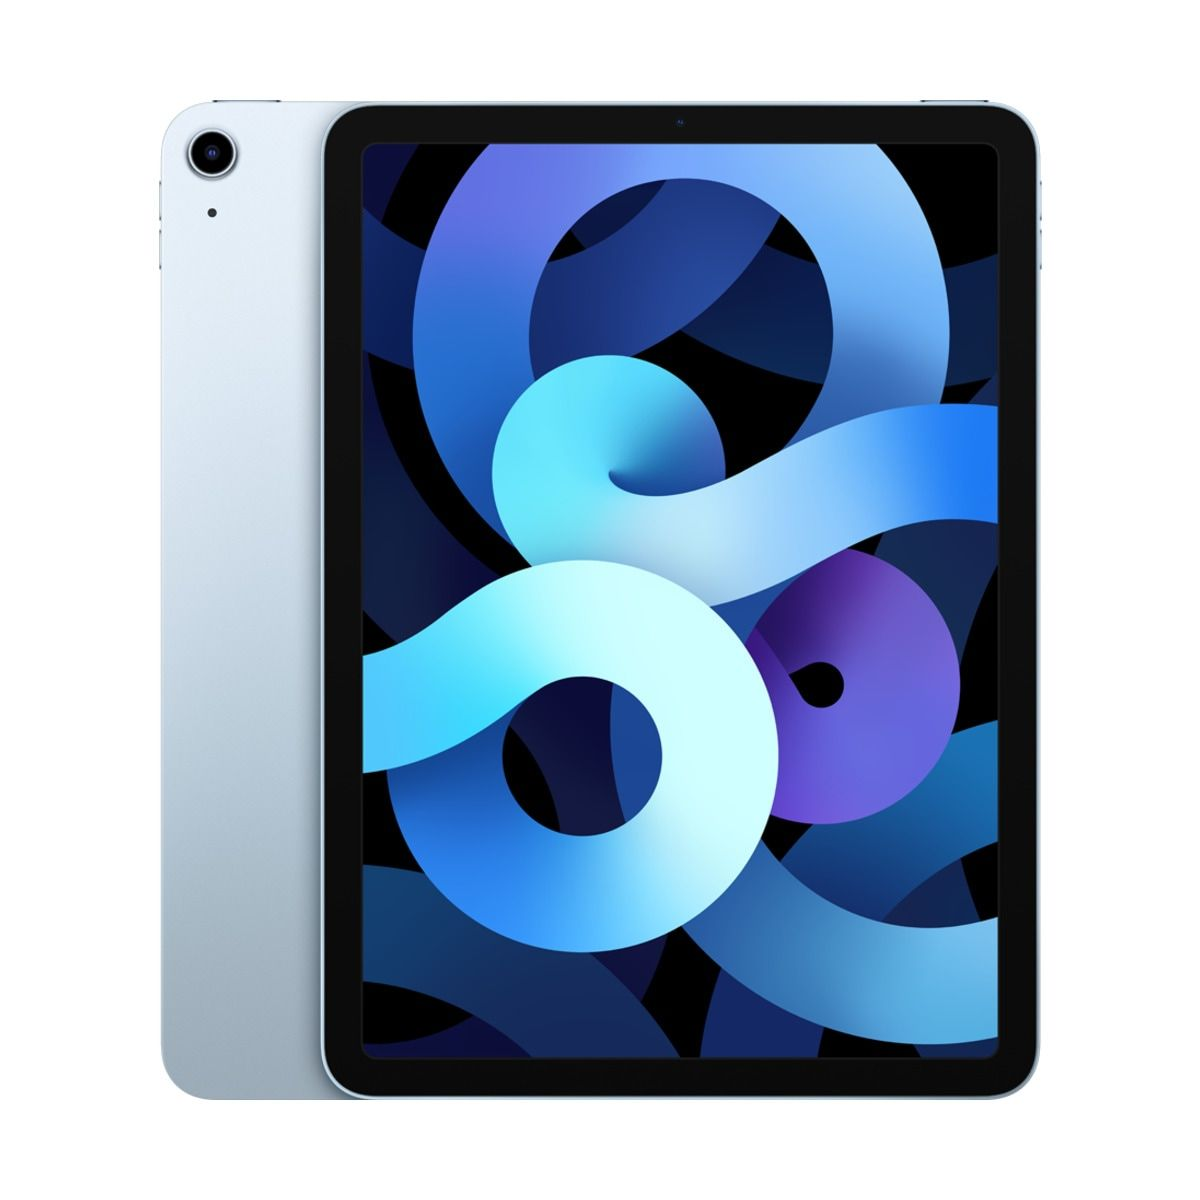 iPad Air Wi-Fi 64GB - Sky Blue